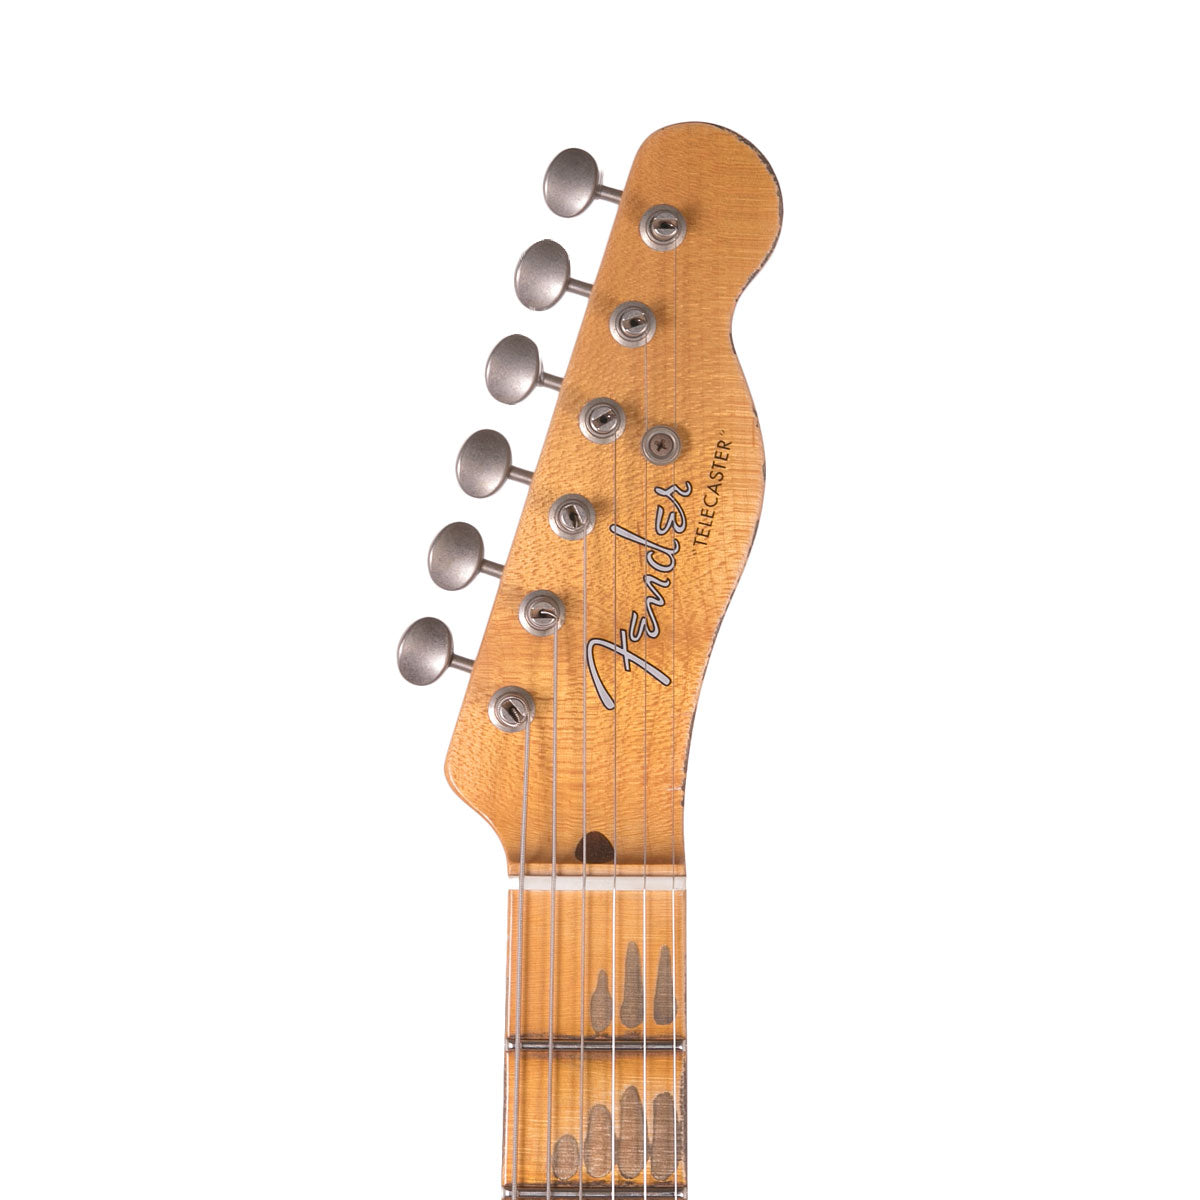 Fender Custom Shop - 1953 Heavy Relic Telecaster - Aged Copper